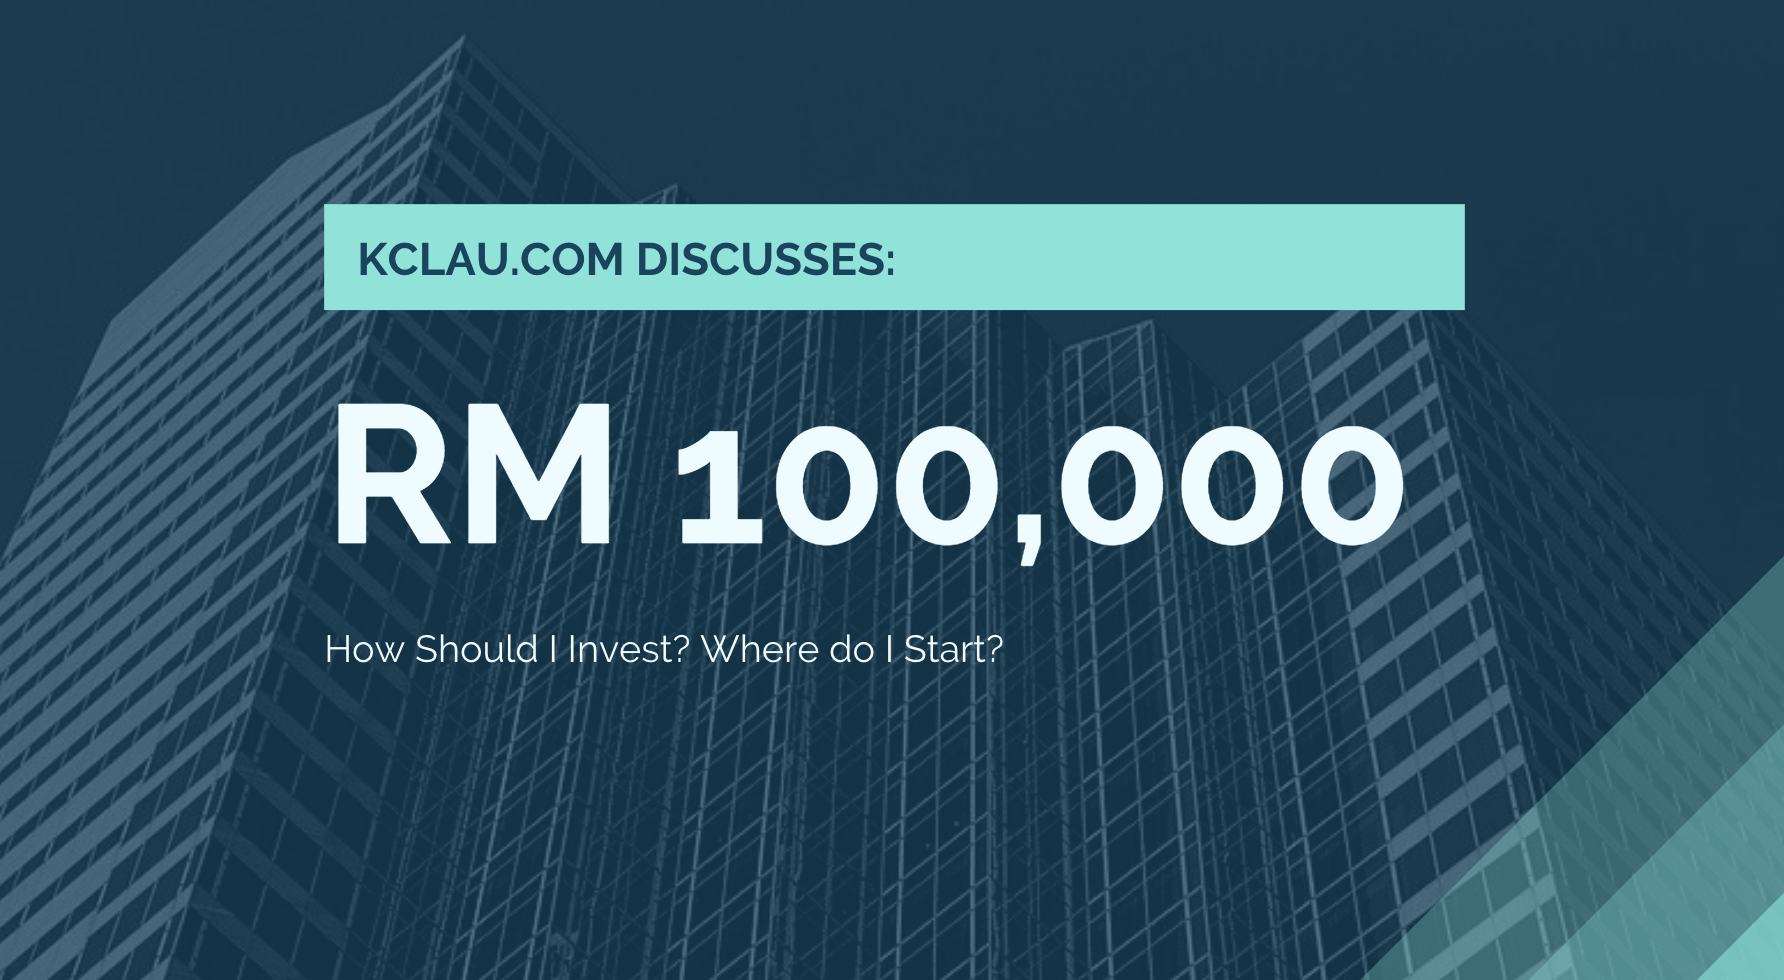 I have RM 100,000 to Invest.  Where should I Invest?